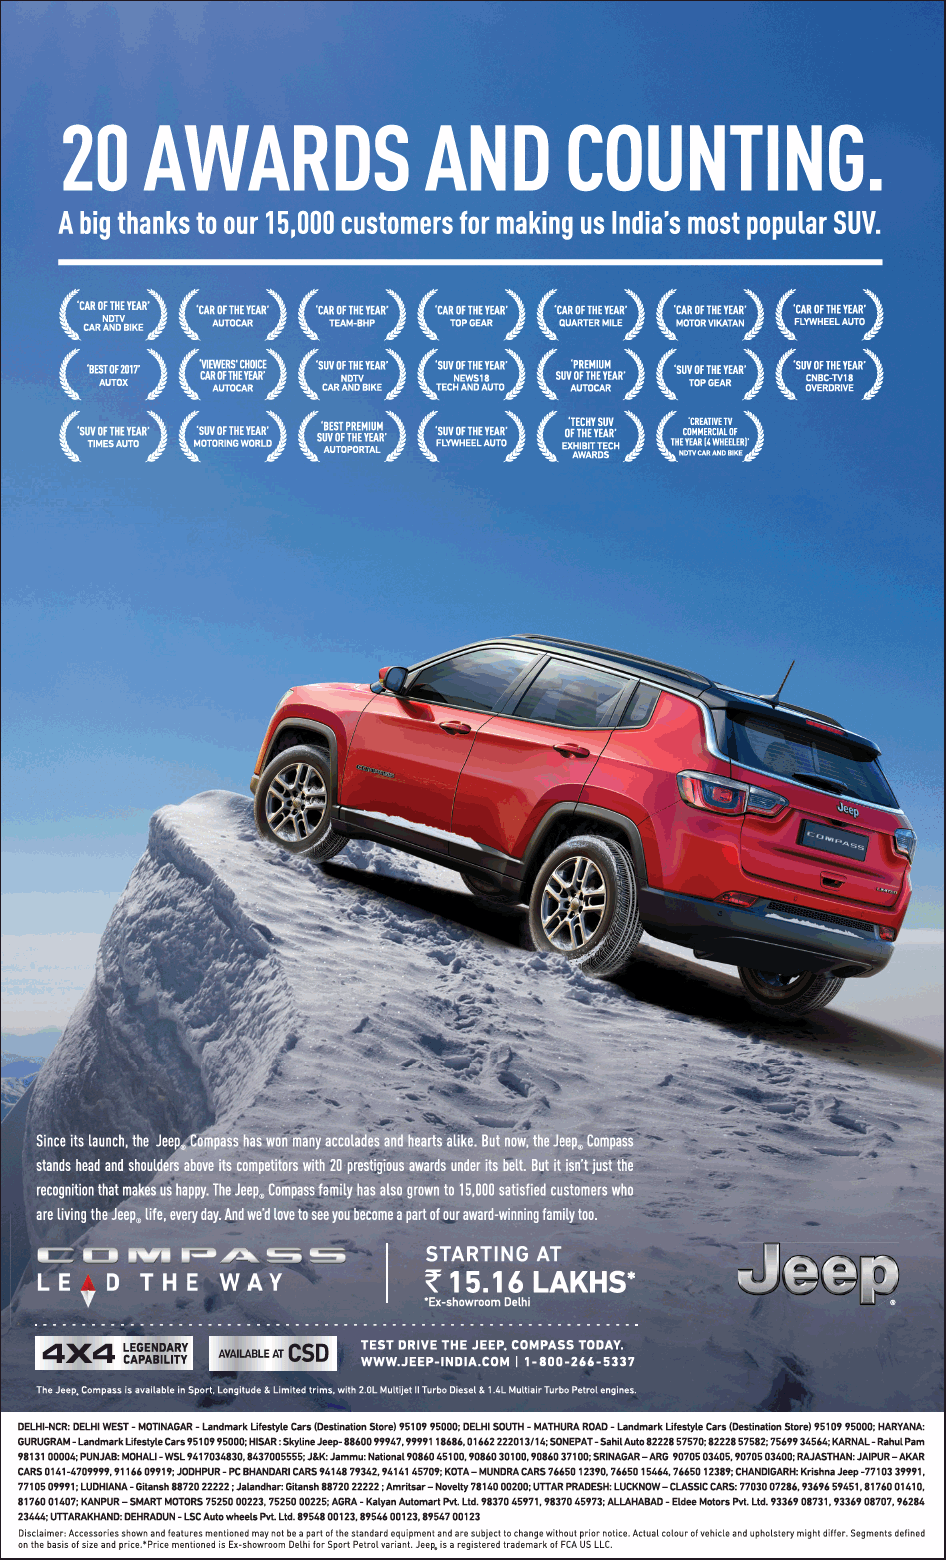 Jeep Compass Lead The Way 20 Awards And Counting A Big Thanks To Customers Ad Jeep Compass Car Advertising Car Ads